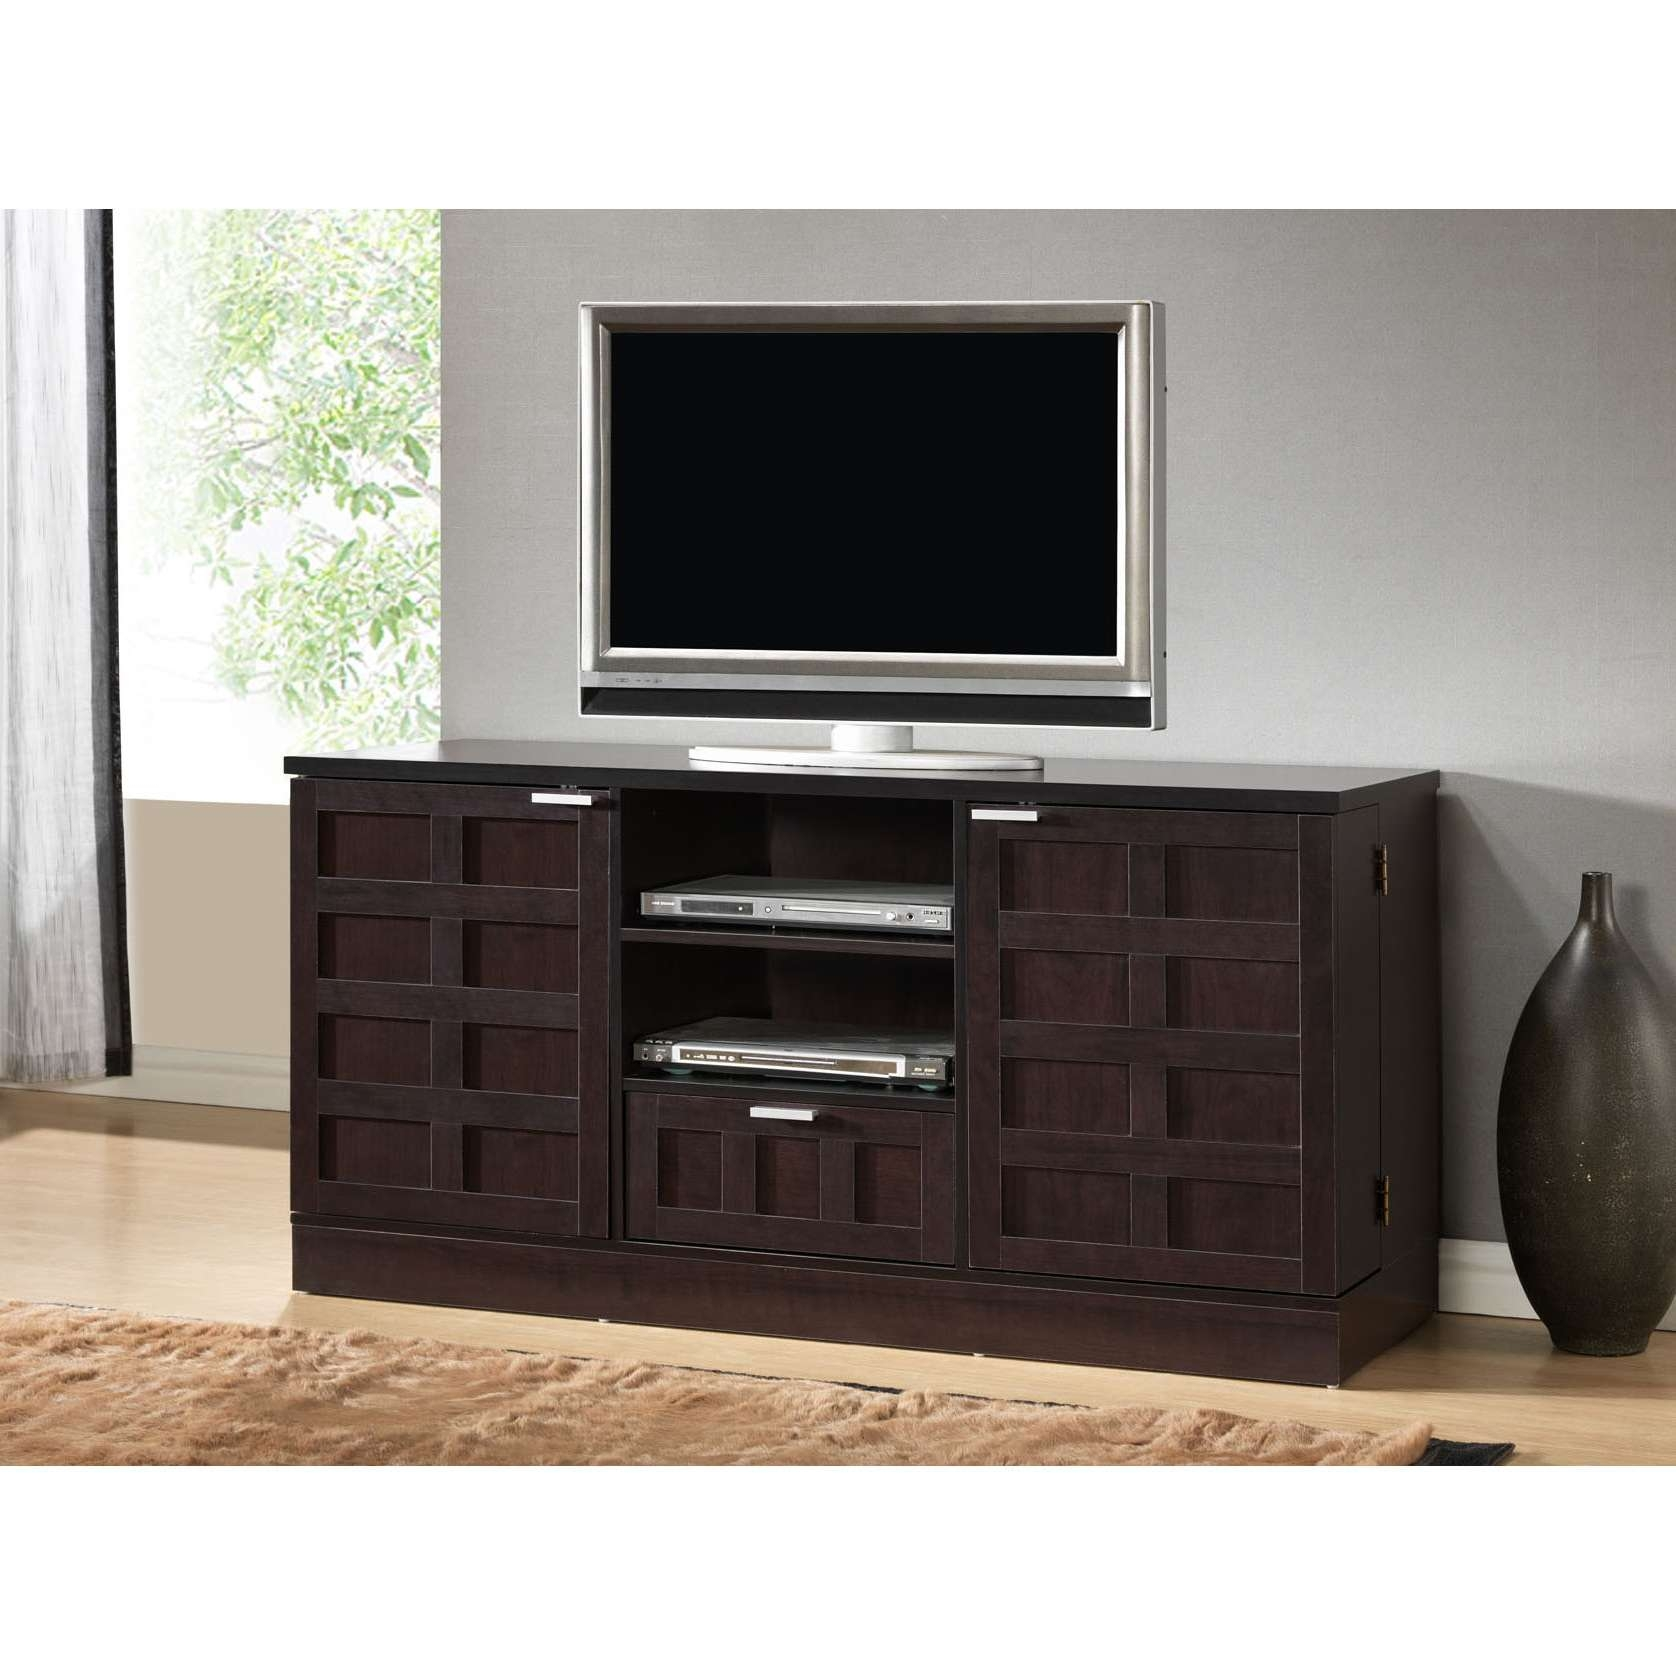 Black Wooden Tv Cabinet With Doors And Racks Also Single Drawer On For Black Tv Cabinets With Drawers (View 12 of 20)